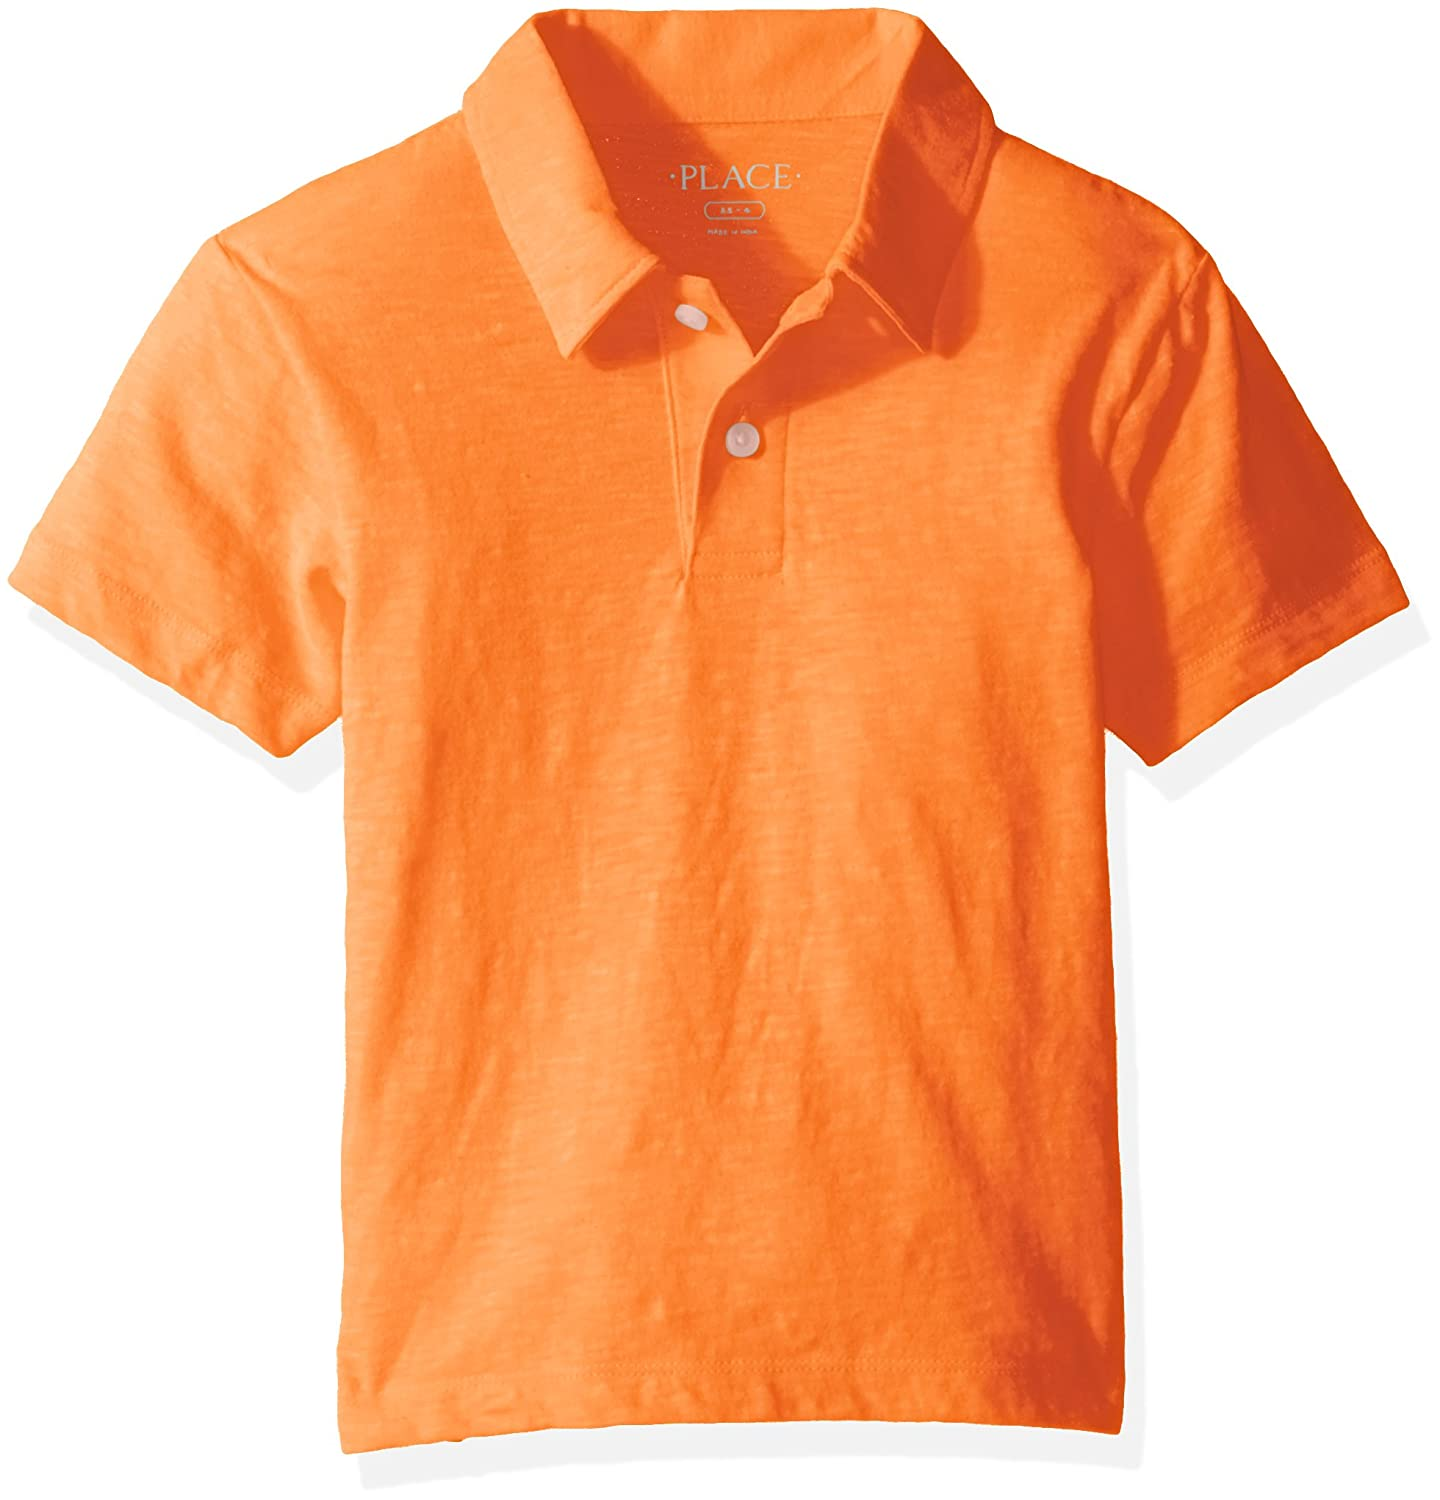 The Children's Place Boys' Neon Polo Shirt hot sale